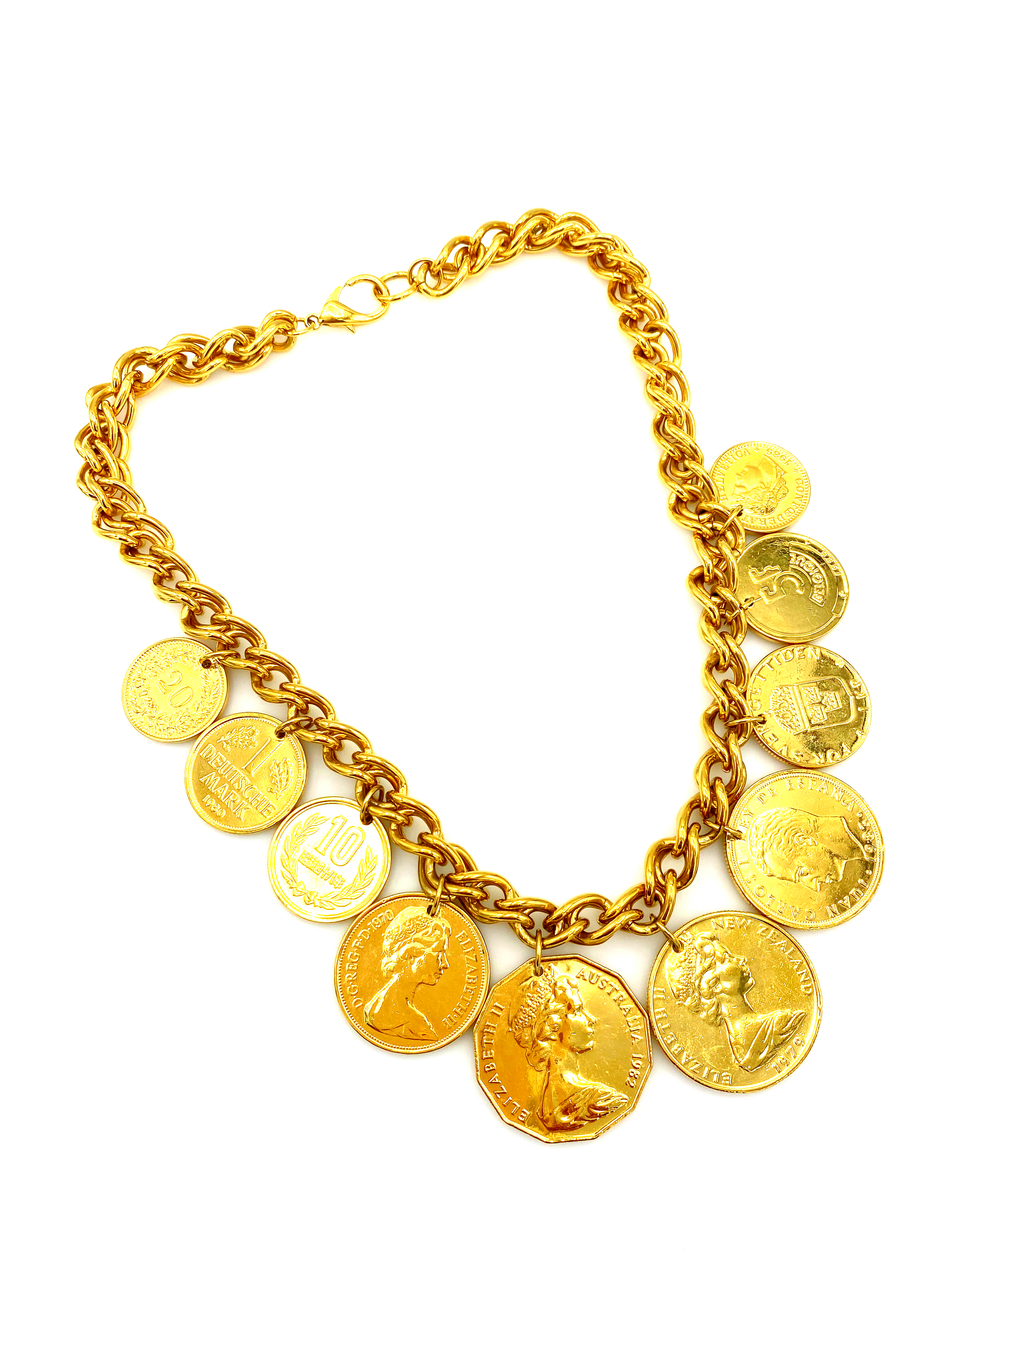 Vintage Gold Large Coin Charm Pendant-Sustainable Fashion with Vintage Style-Trending Designer Fashion-24 Wishes